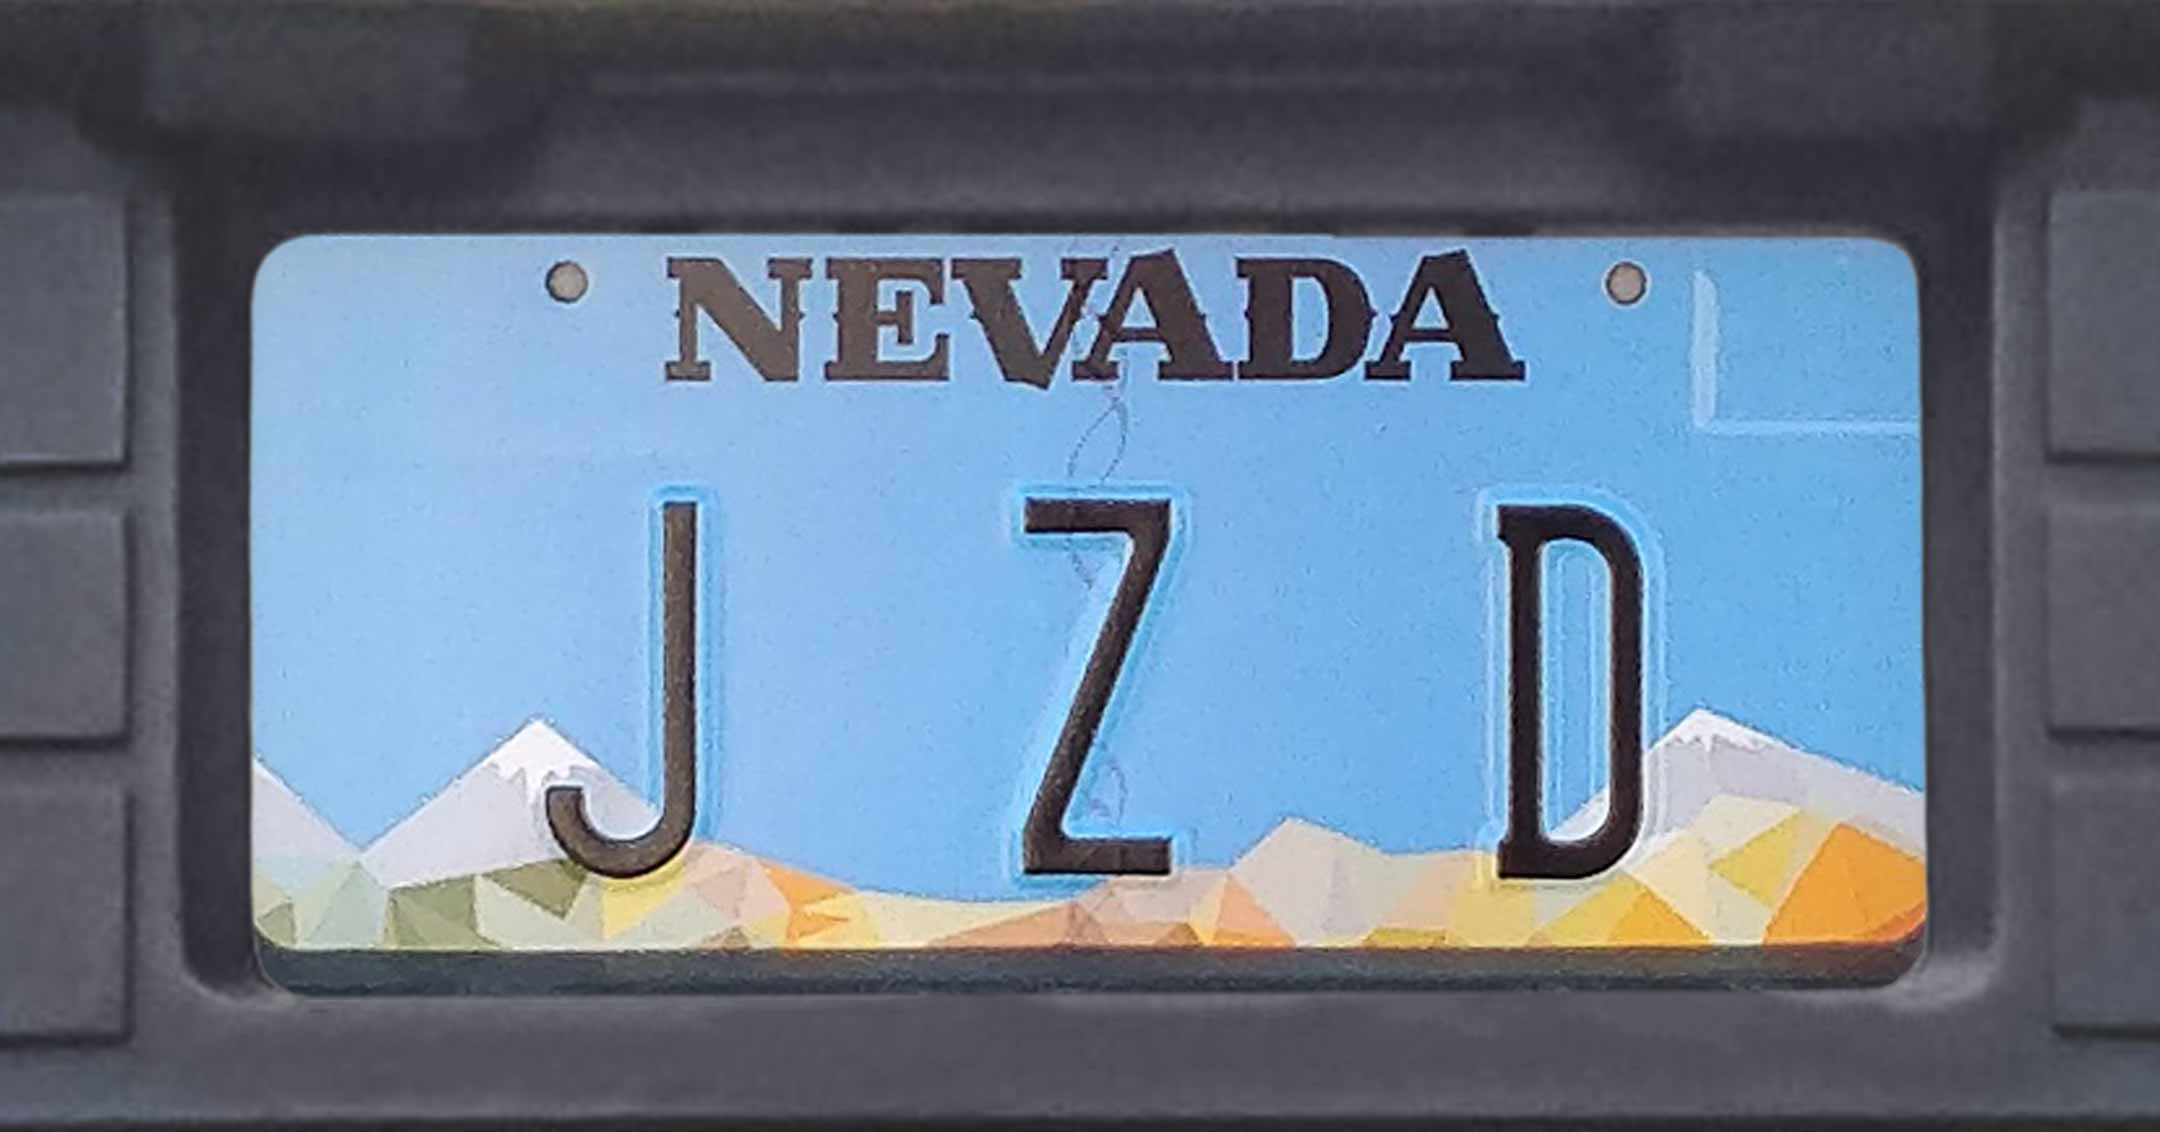 Personalized Plates